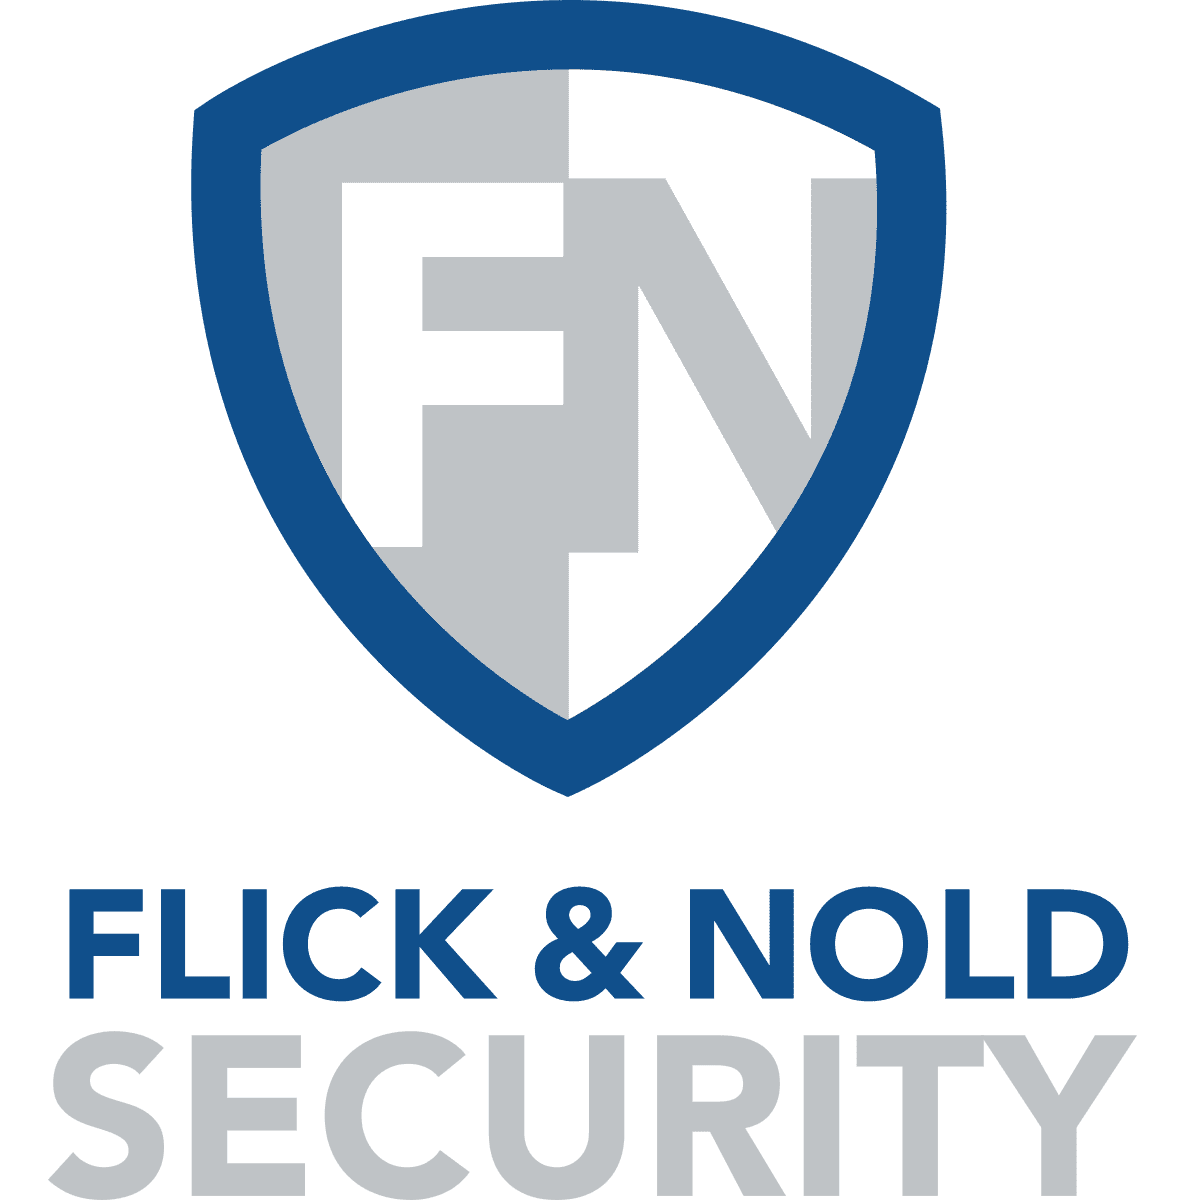 Flick & Nold Security